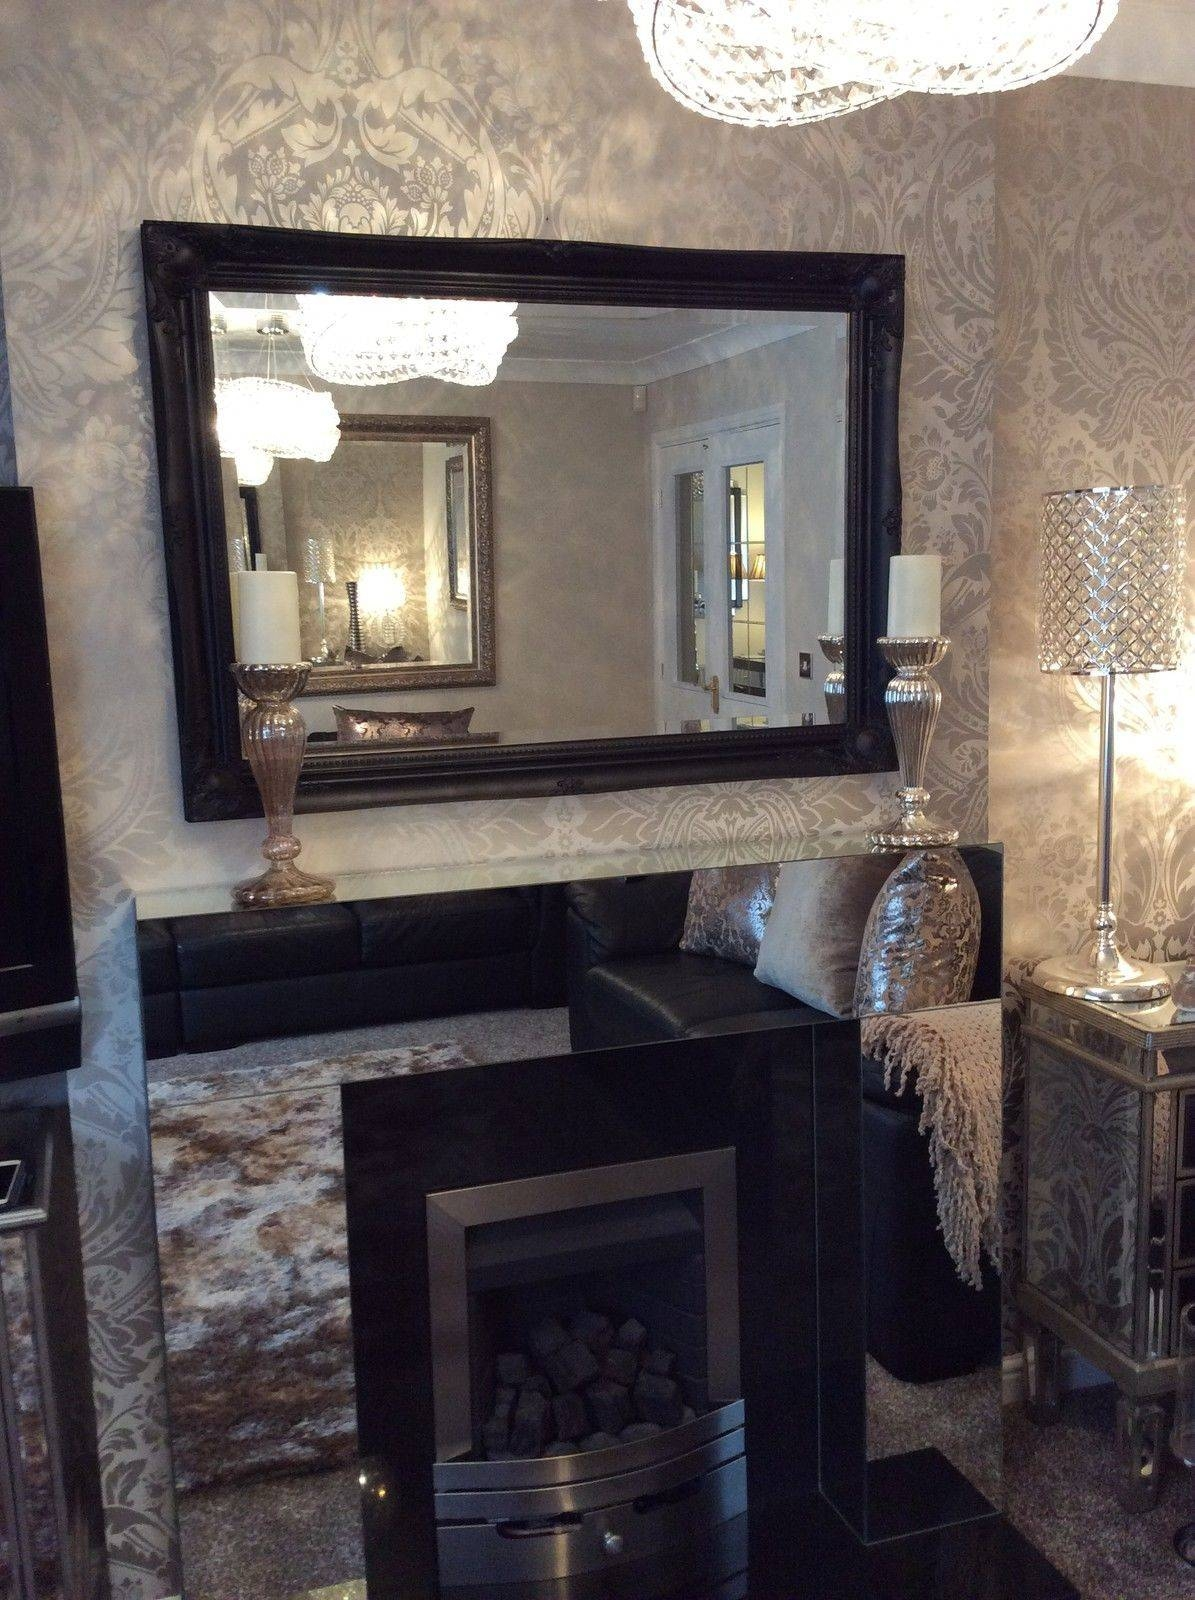 Black Shabby Chic Framed Ornate Overmantle Wall Mirror – Range Of Intended For Black Shabby Chic Mirrors (View 3 of 25)